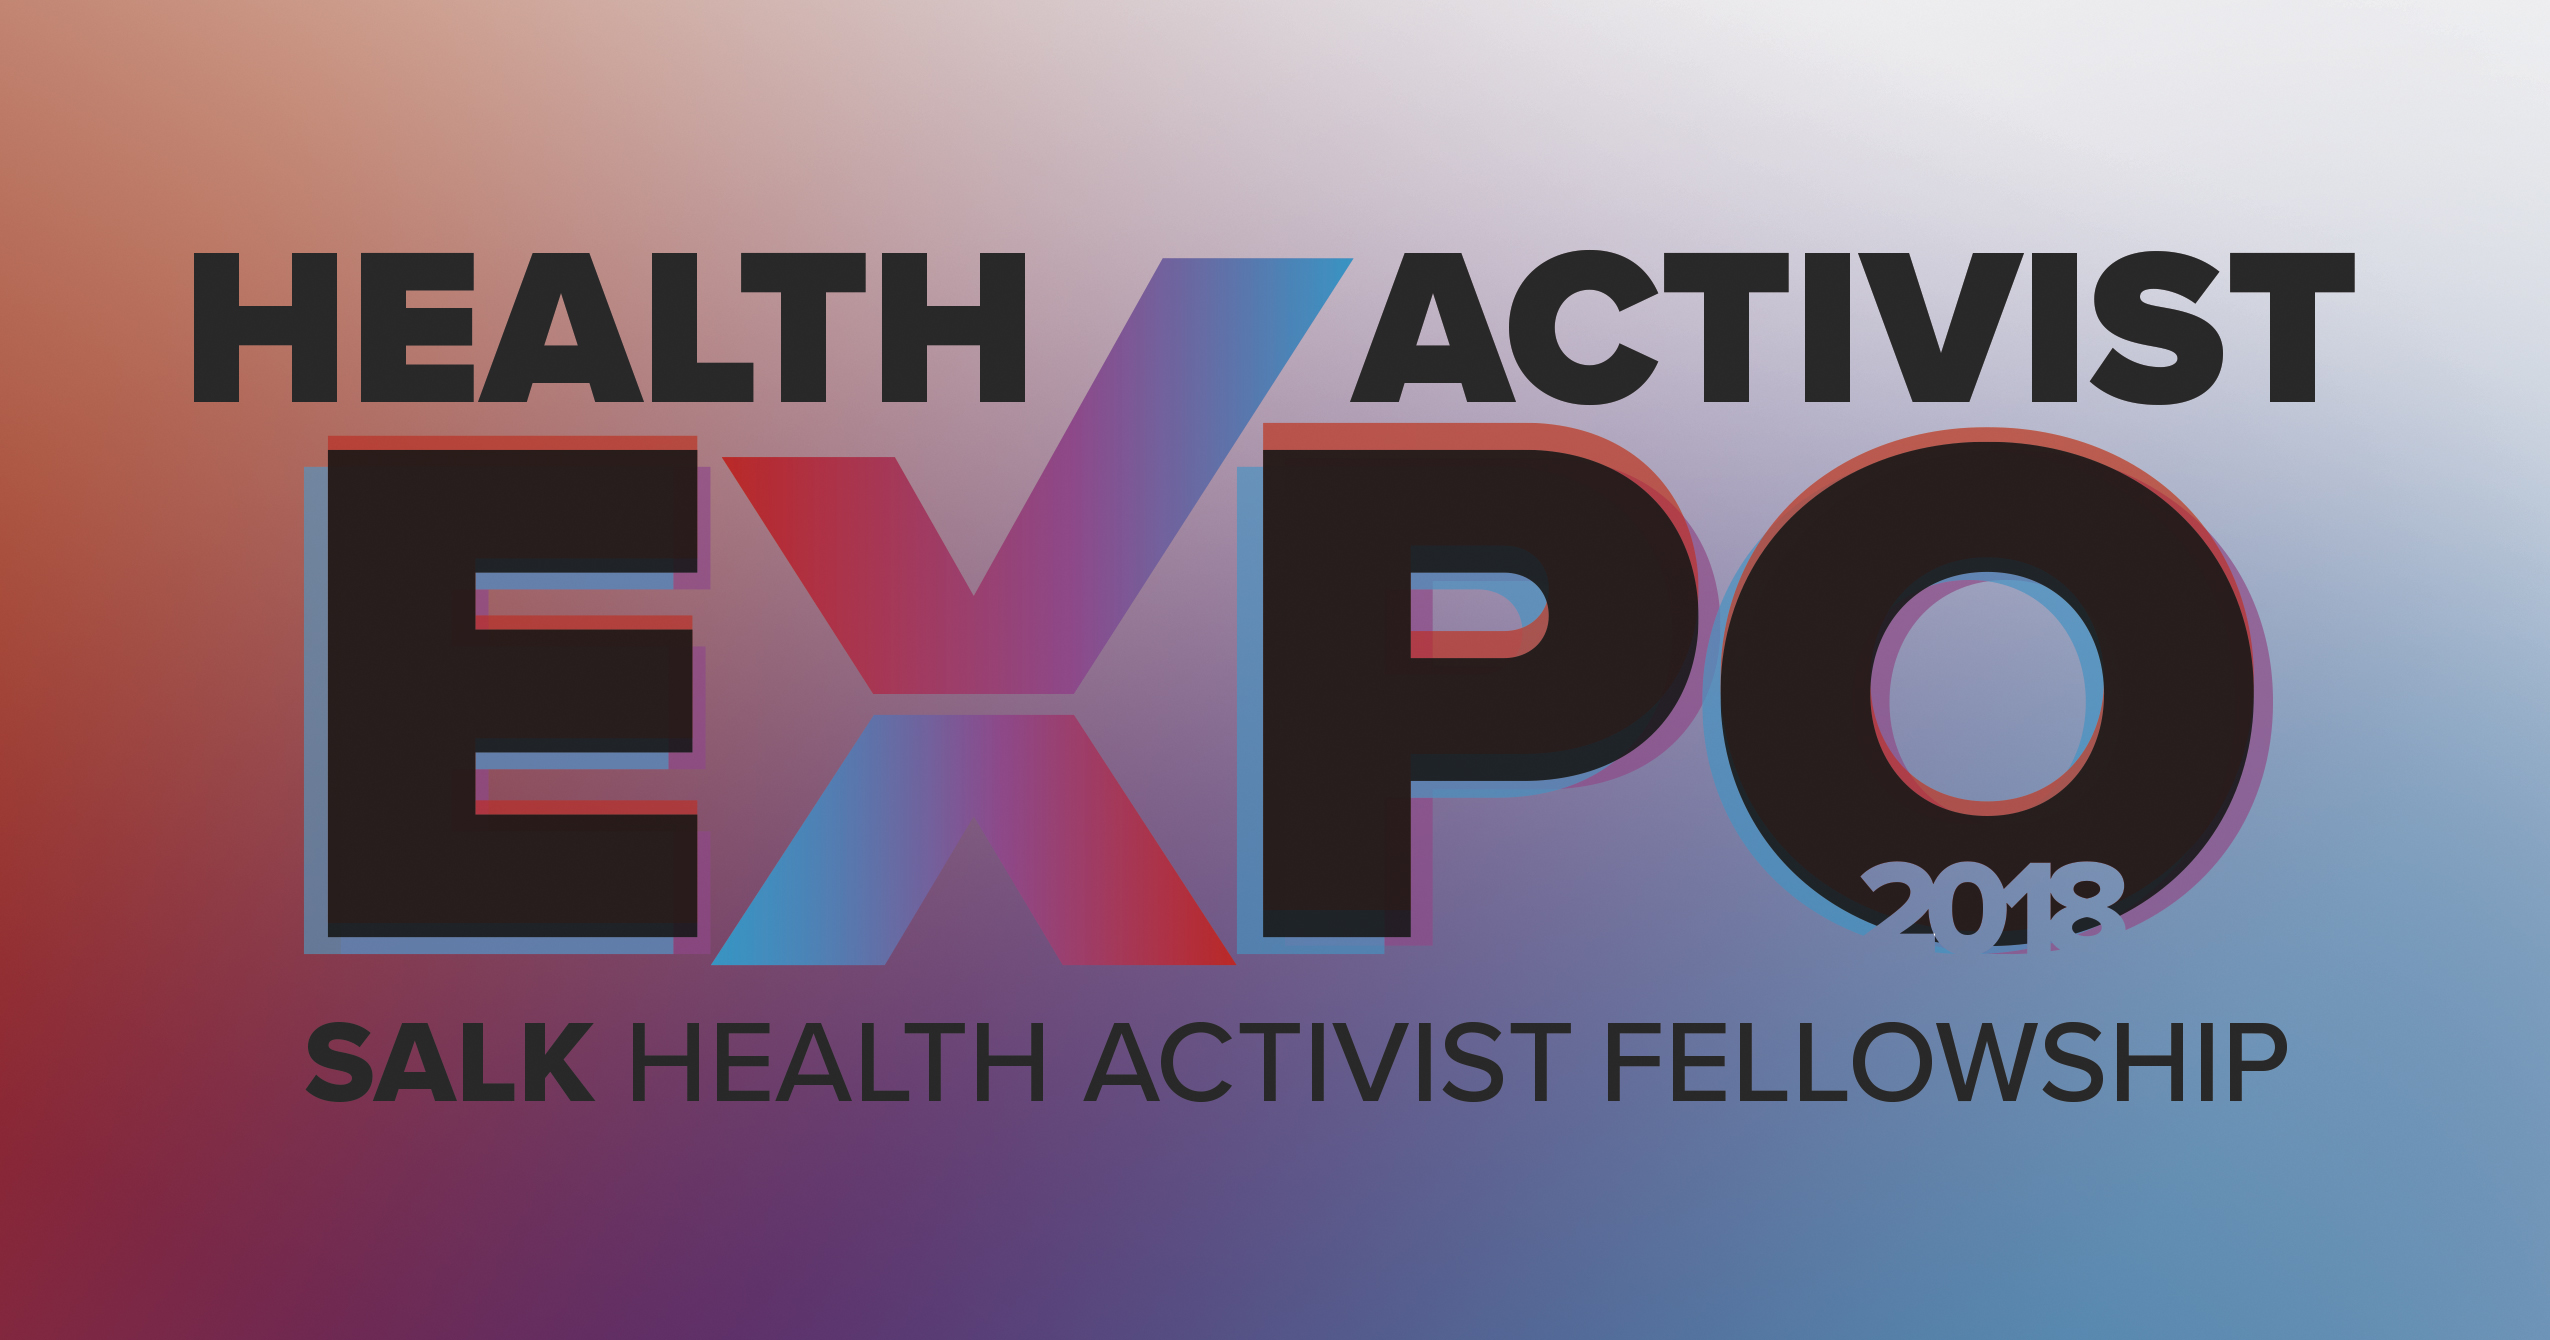 Health Activist Expo Displays Next-Generation Leaders, Innovative Solutions to Pittsburgh's Greatest Health Challenges Icon Image